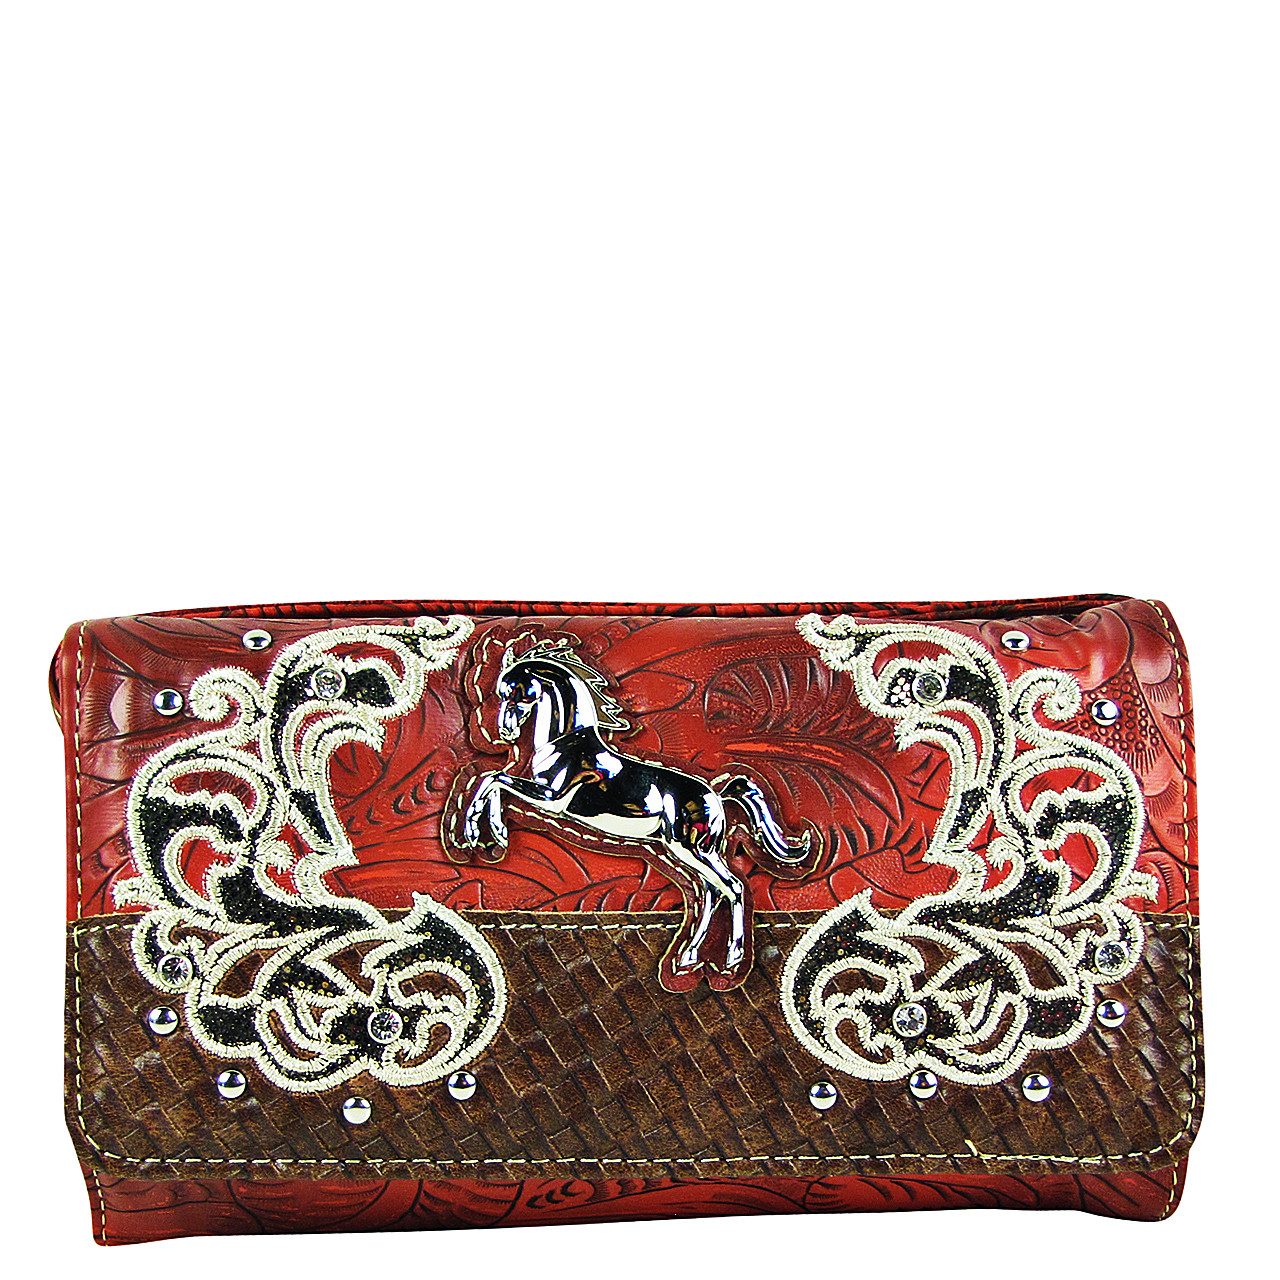 RED STUDDED HORSE LOOK CLUTCH TRIFOLD WALLET CW1-1285RED